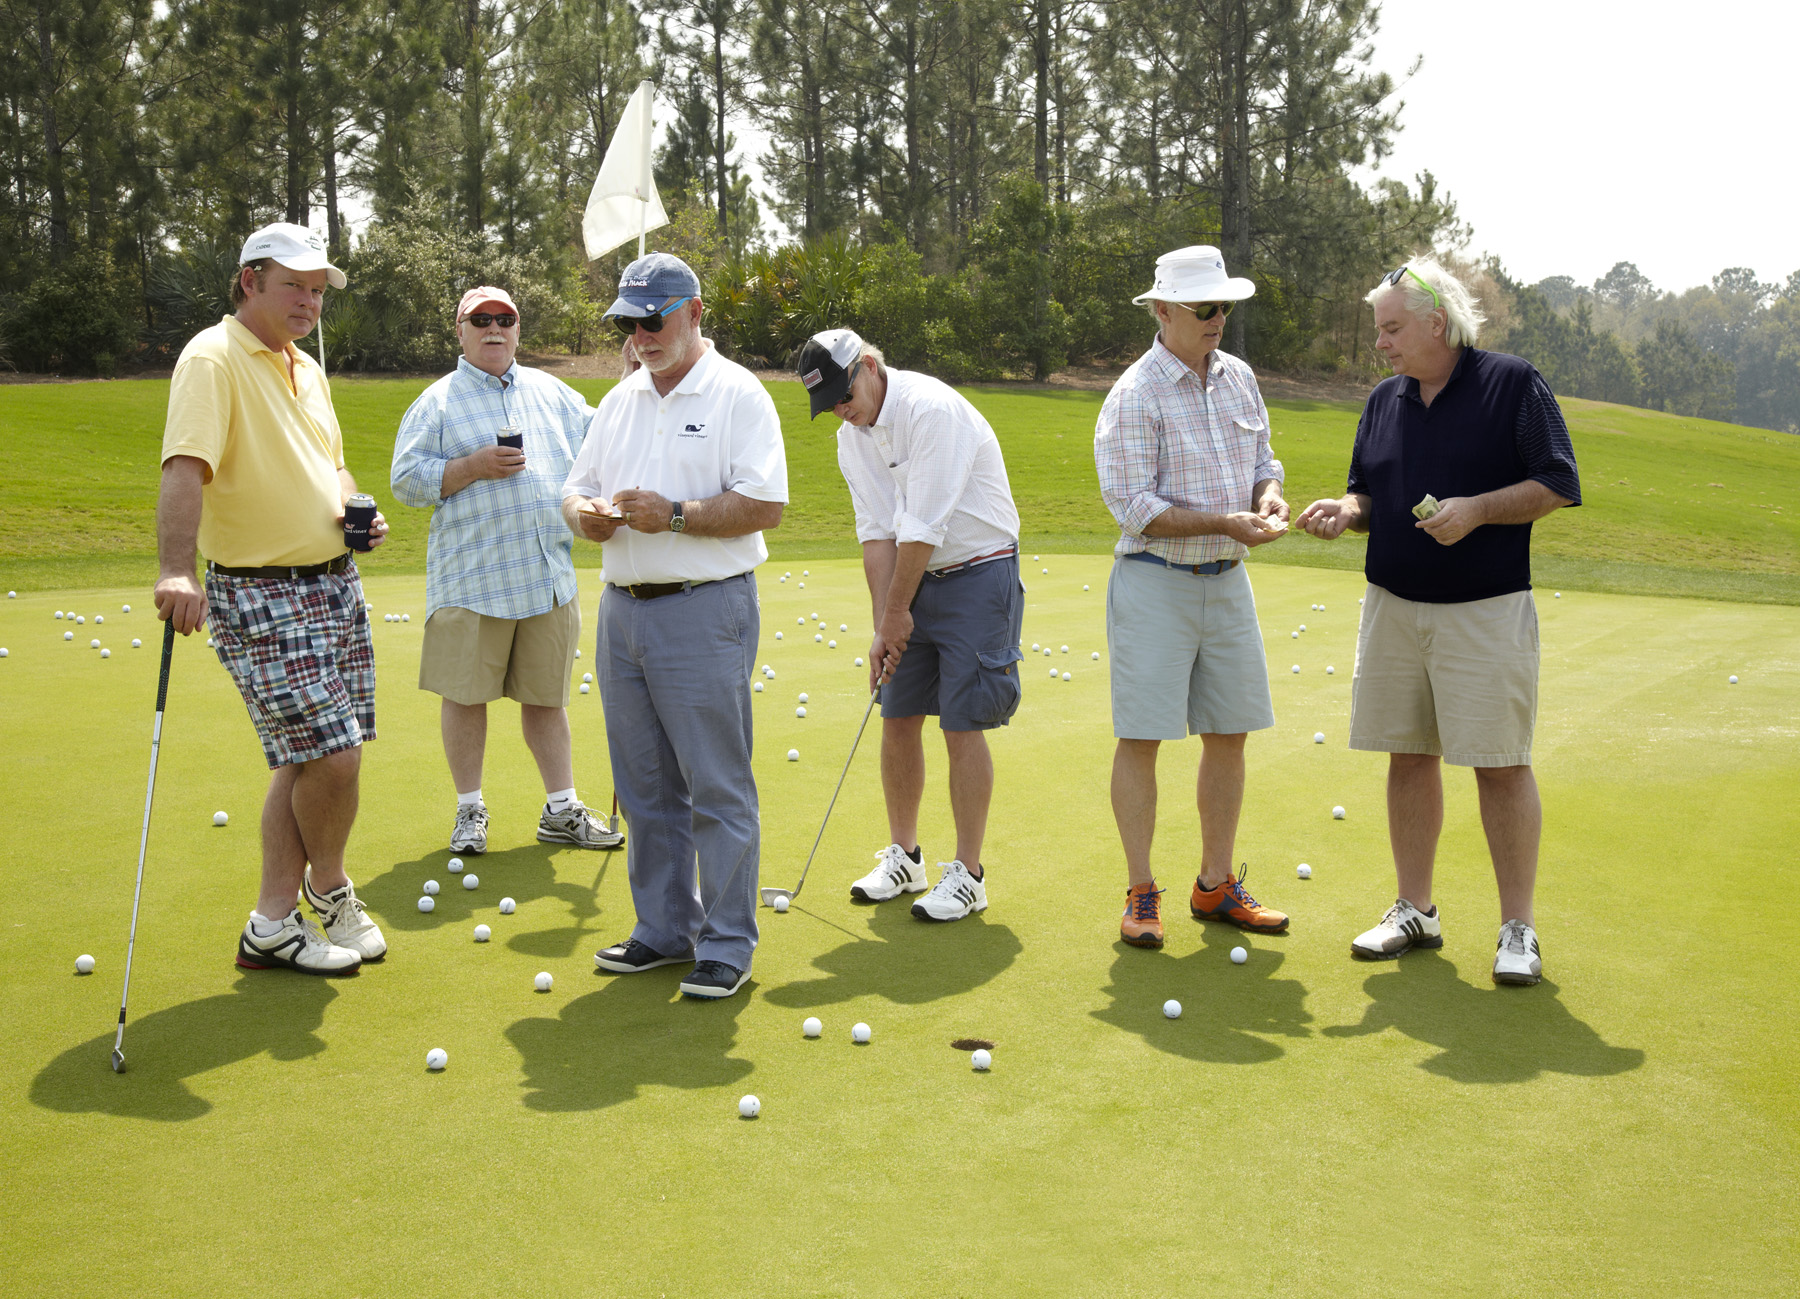 The Murray Bros. playing the best game there is, in our opinion ;) - (Pictured left to right: Joel, Brian, Ed, Johnny, Bill, Andy)